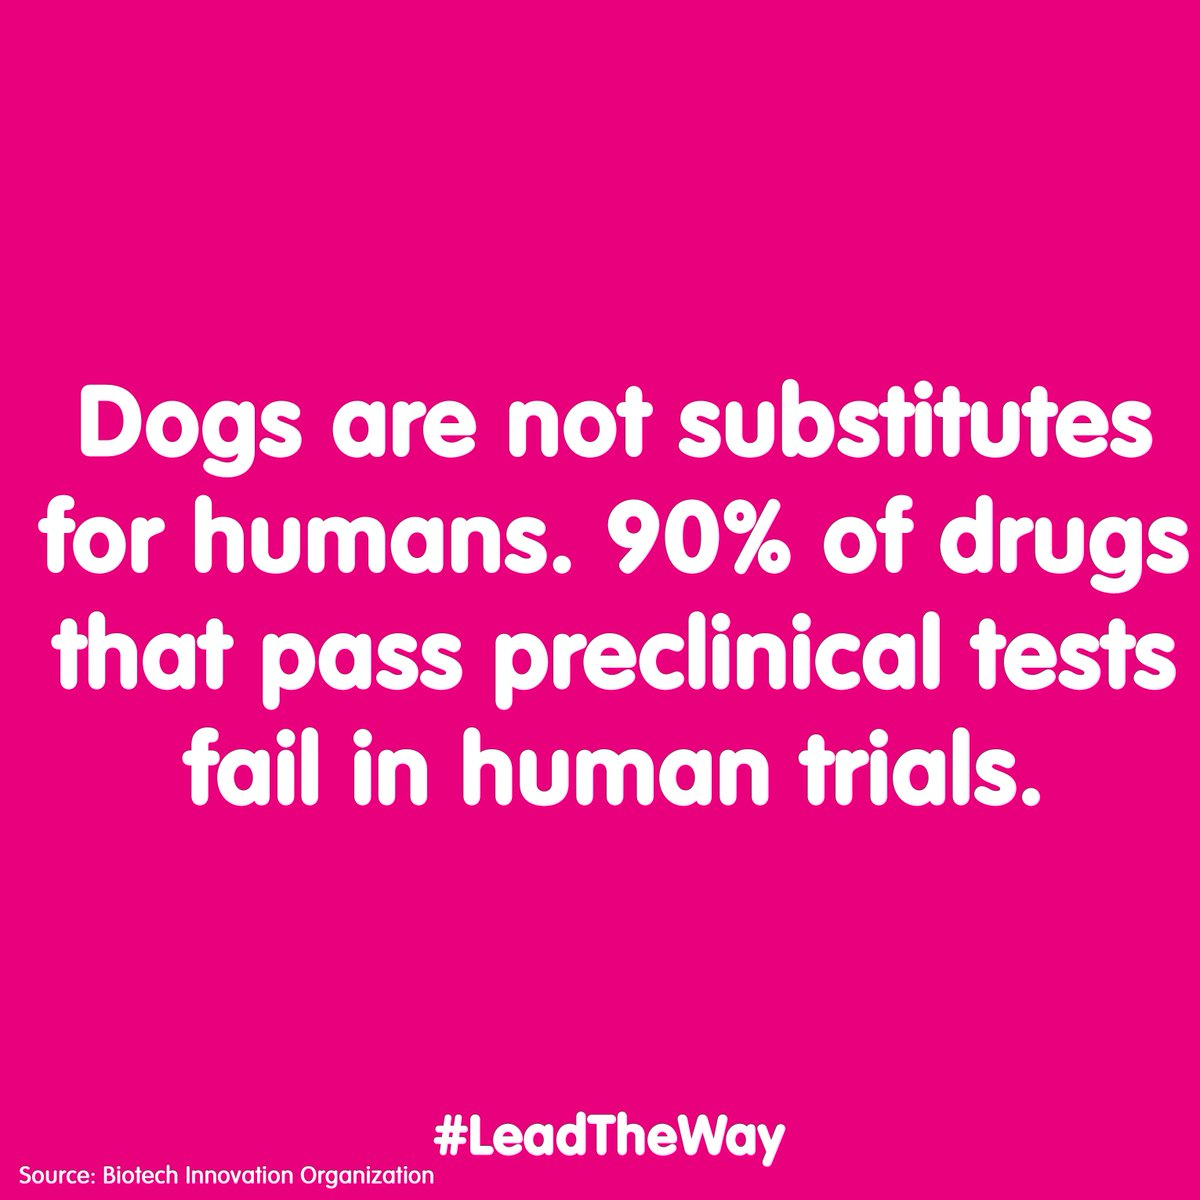 aecf12045e7 We want to end the suffering of dogs in UK laboratories, are you with us?  Sign the petition: http://bit.ly/LTWpetition #LeadTheWaypic.twitter .com/nO9em9T6tC